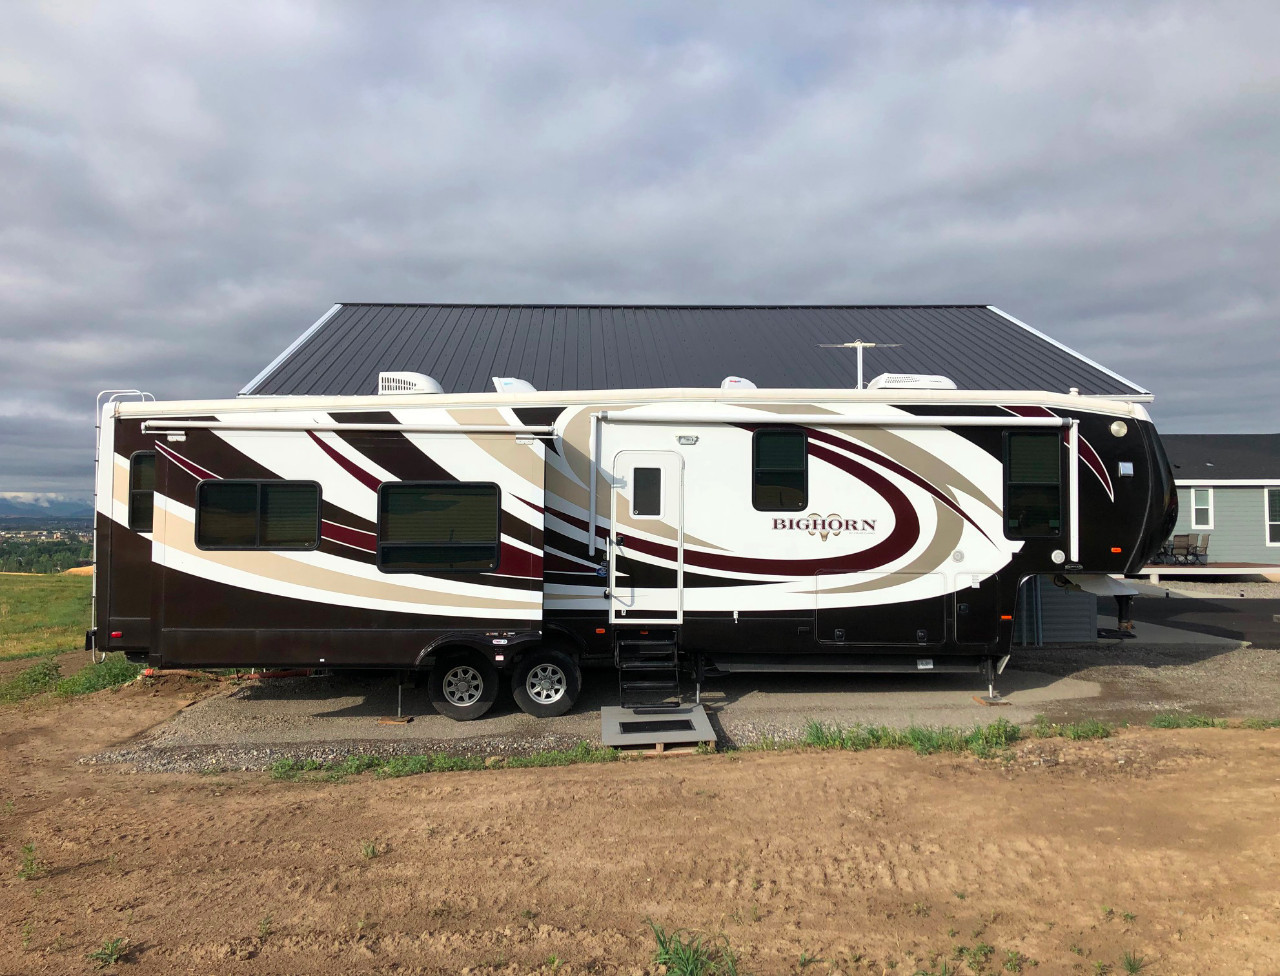 Bighorn For Sale - Heartland RVs - RV Trader